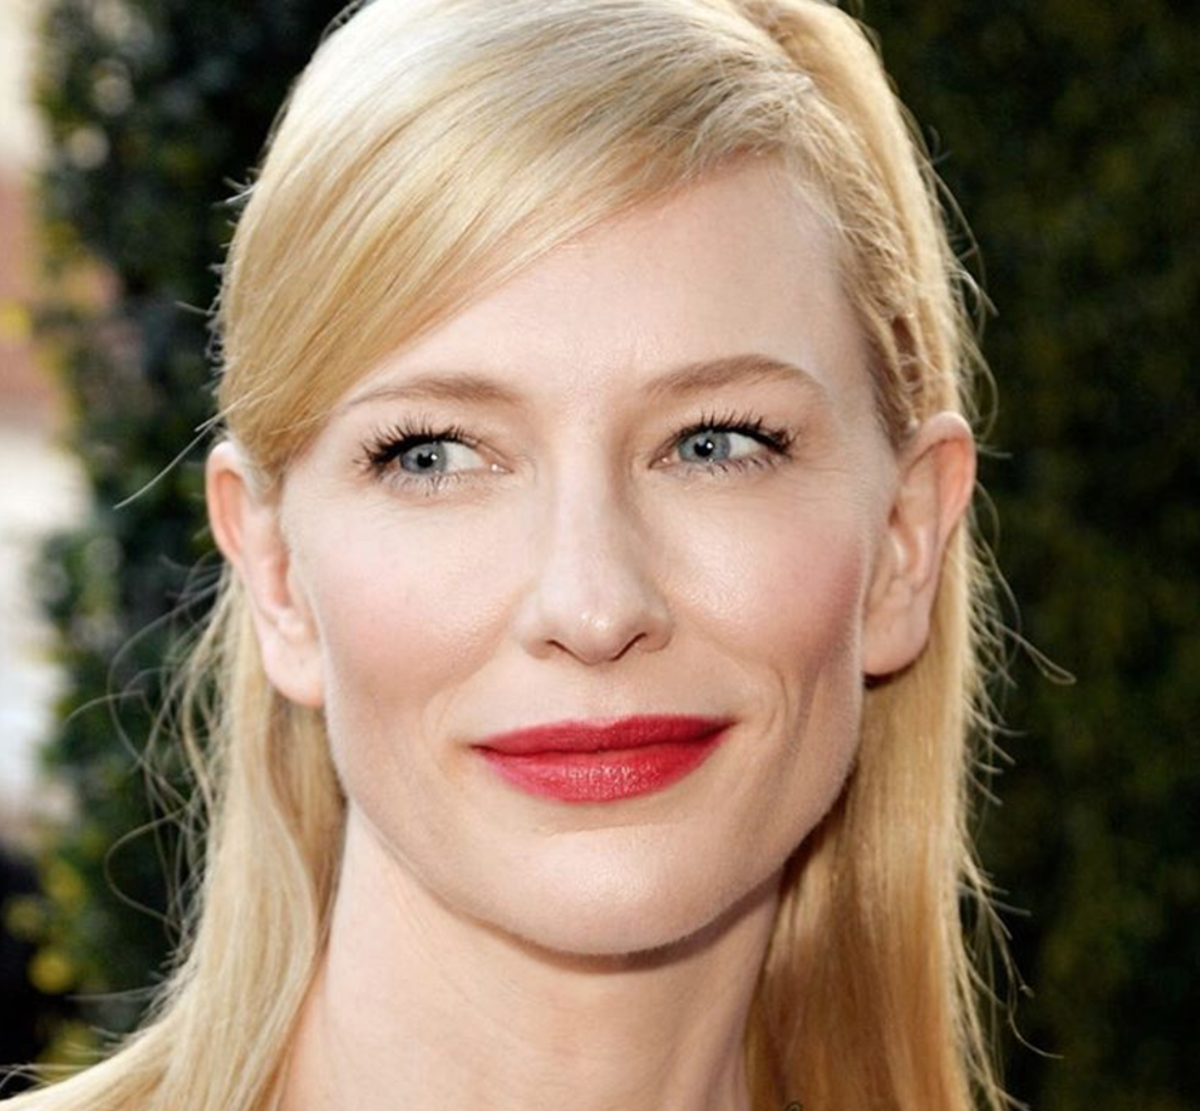 Flawless Skin: The 3 Reasons Cate Blanchett Has Such Famously Flawless